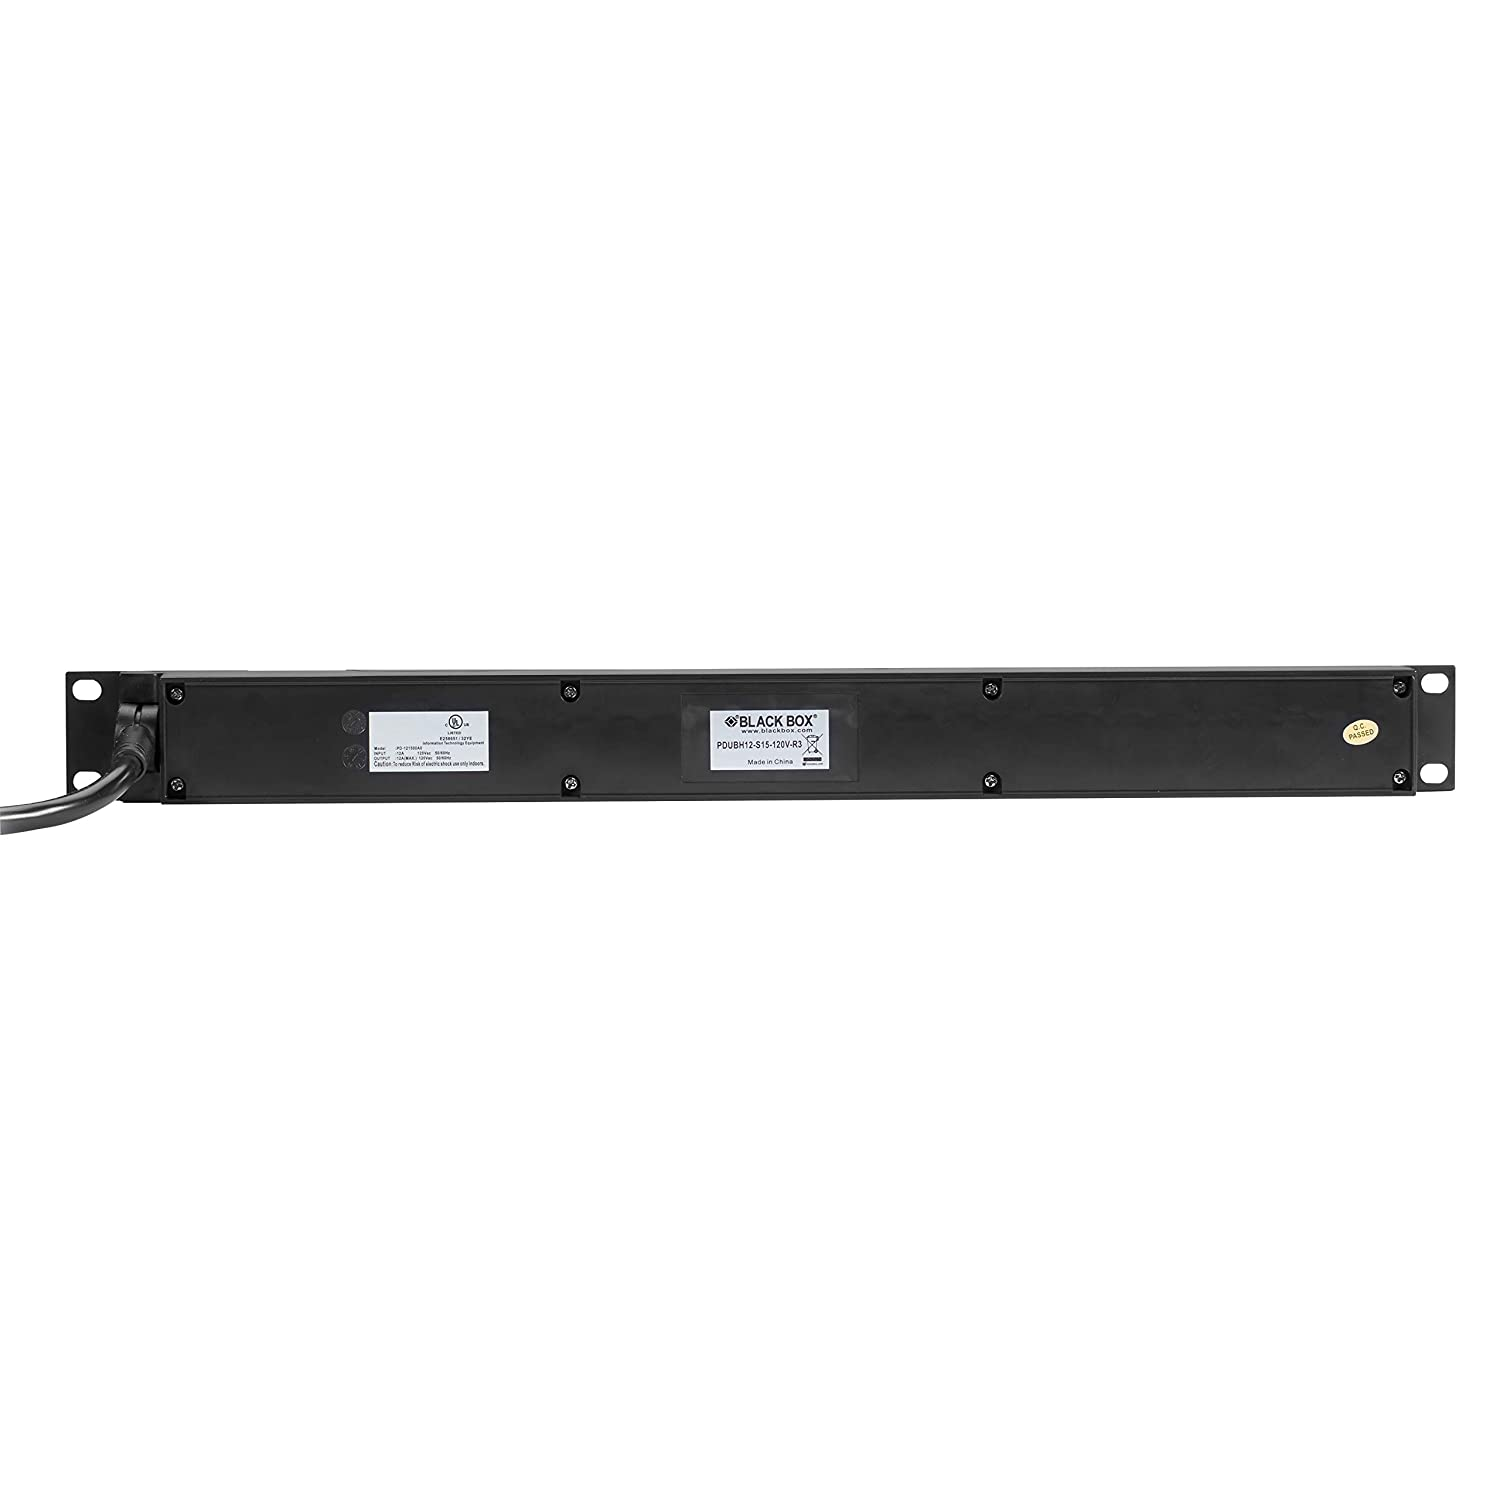 Black Box Horizontal PDU 15A 20V 12 5-15R Outlets 6ft 5-15P Cord